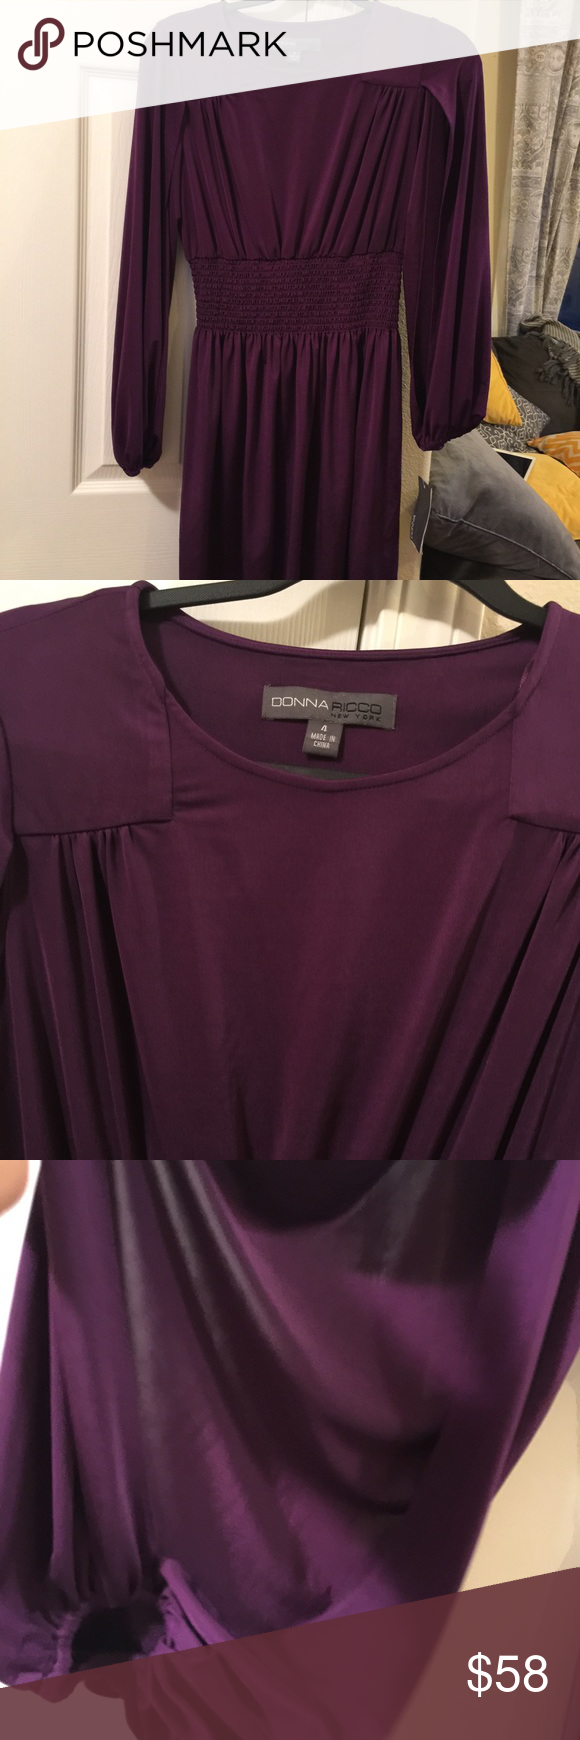 NWT Donna Rocco dress 4 Style #8796217M Royal Purple  Size 4 96% polyester  6% spandex  $118. Open sleeve Donna Ricco Dresses Midi